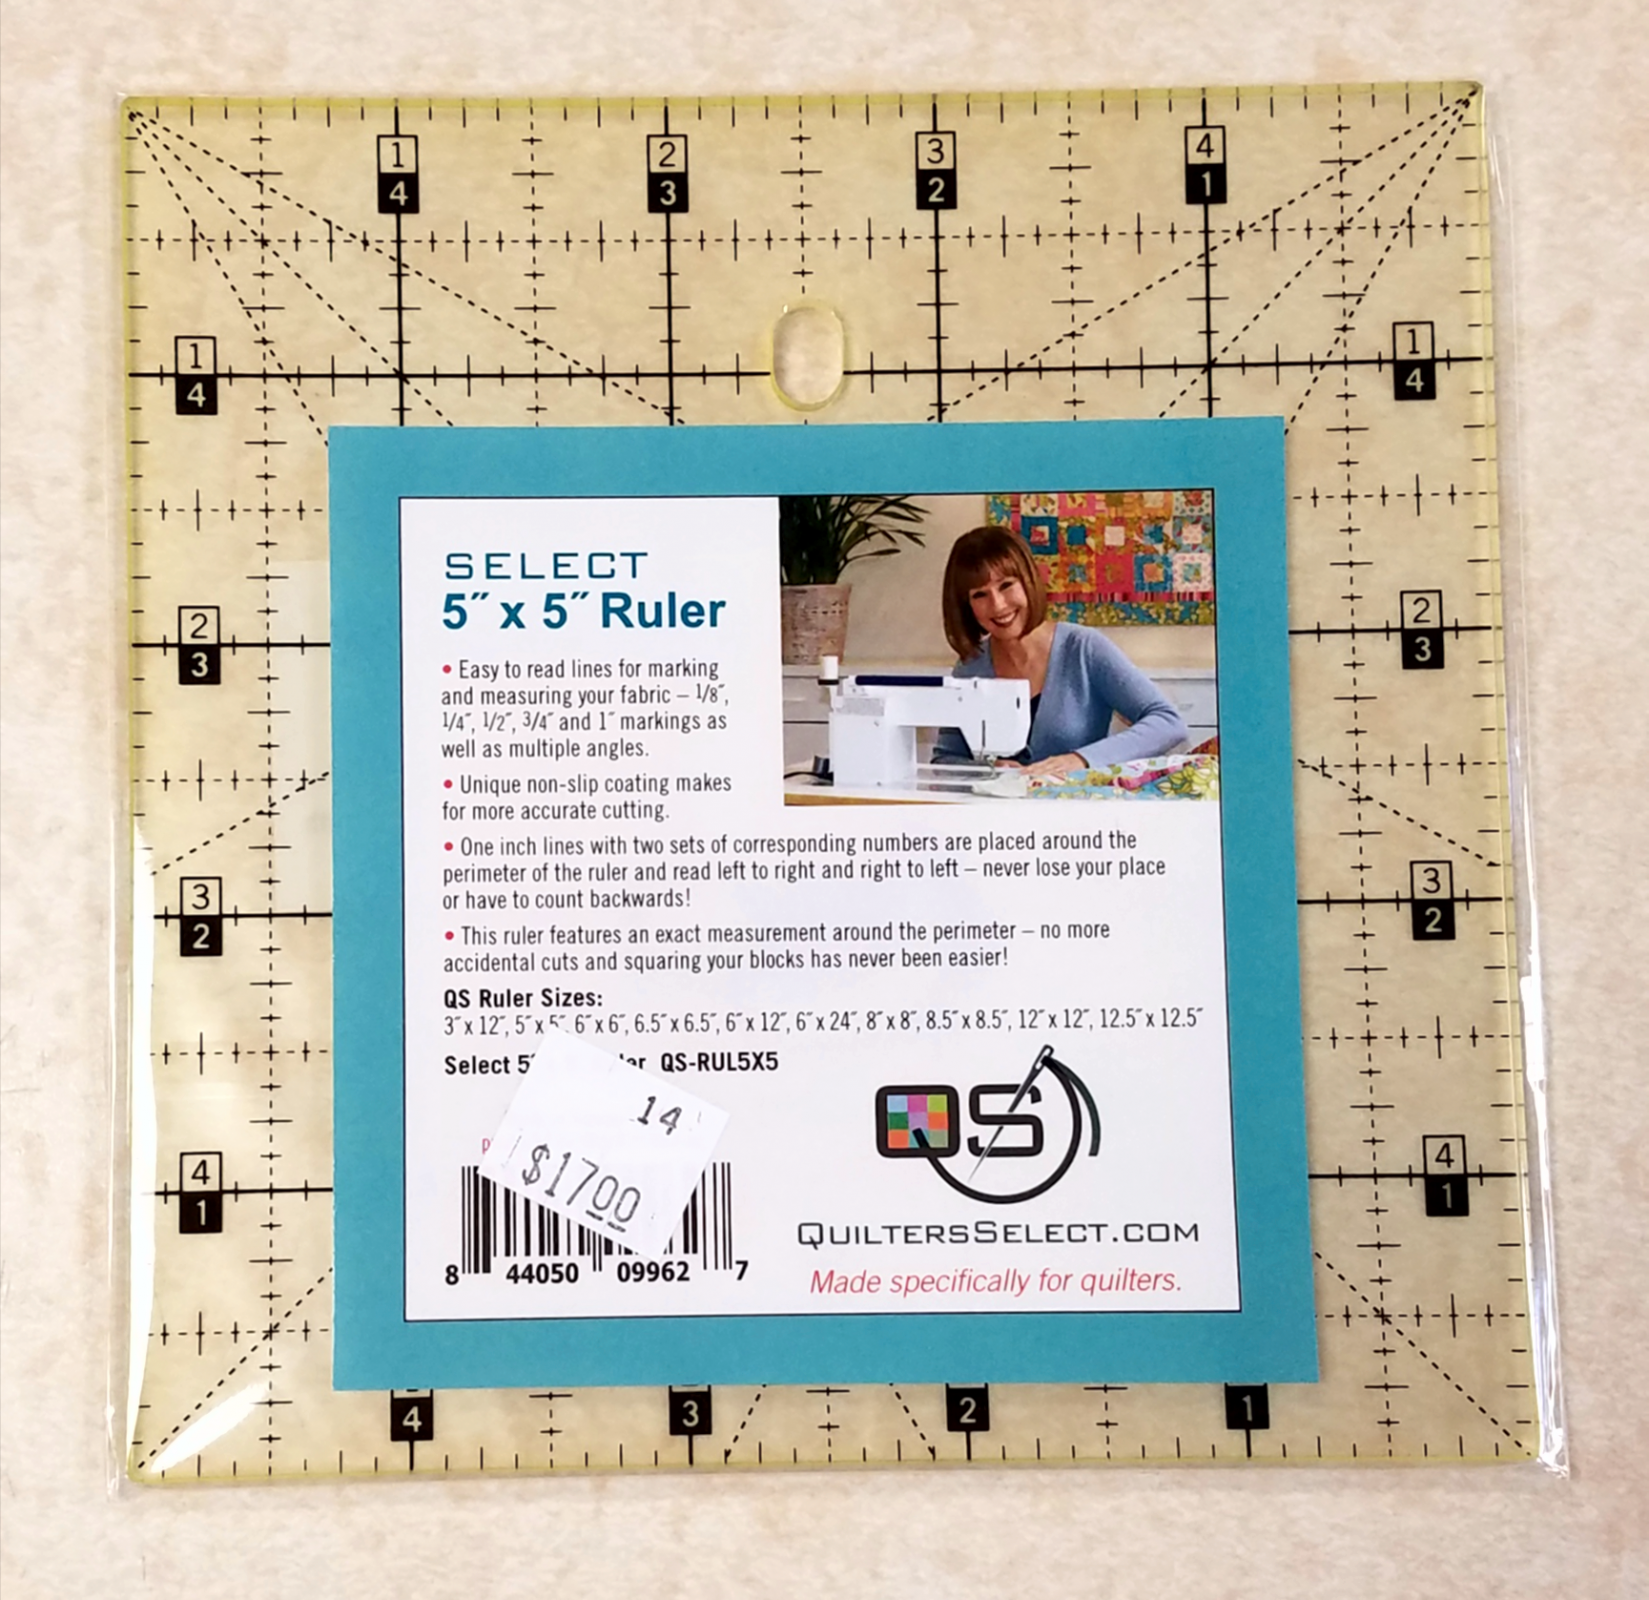 Quilter's Select Ruler 5 x 5